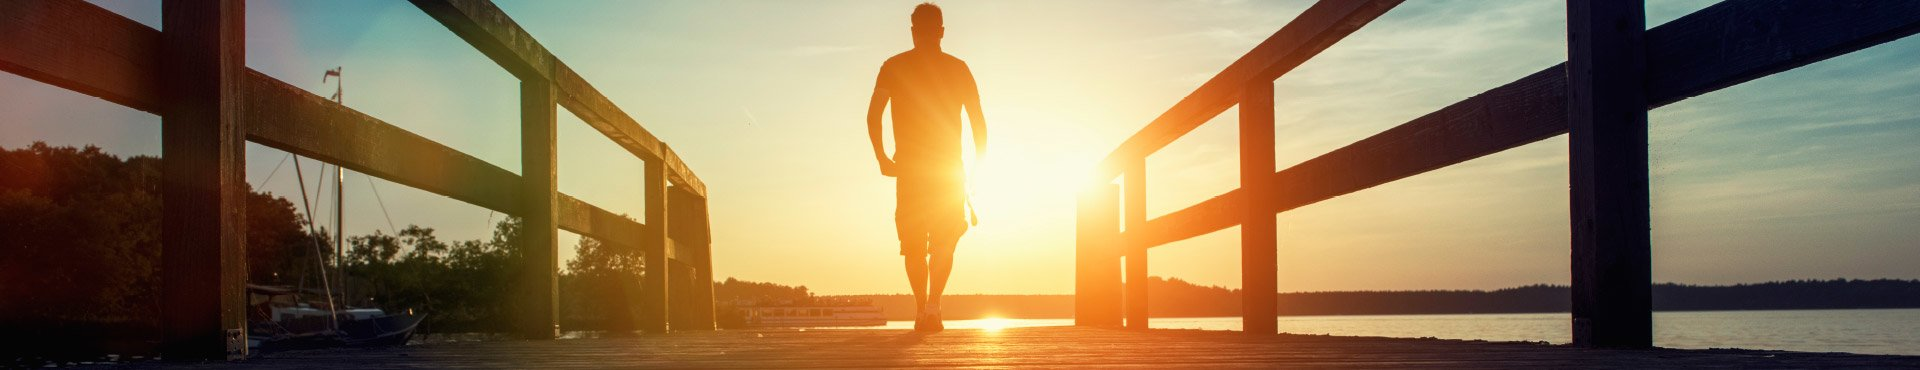 Man walking on a wharf | Shine Lawyers